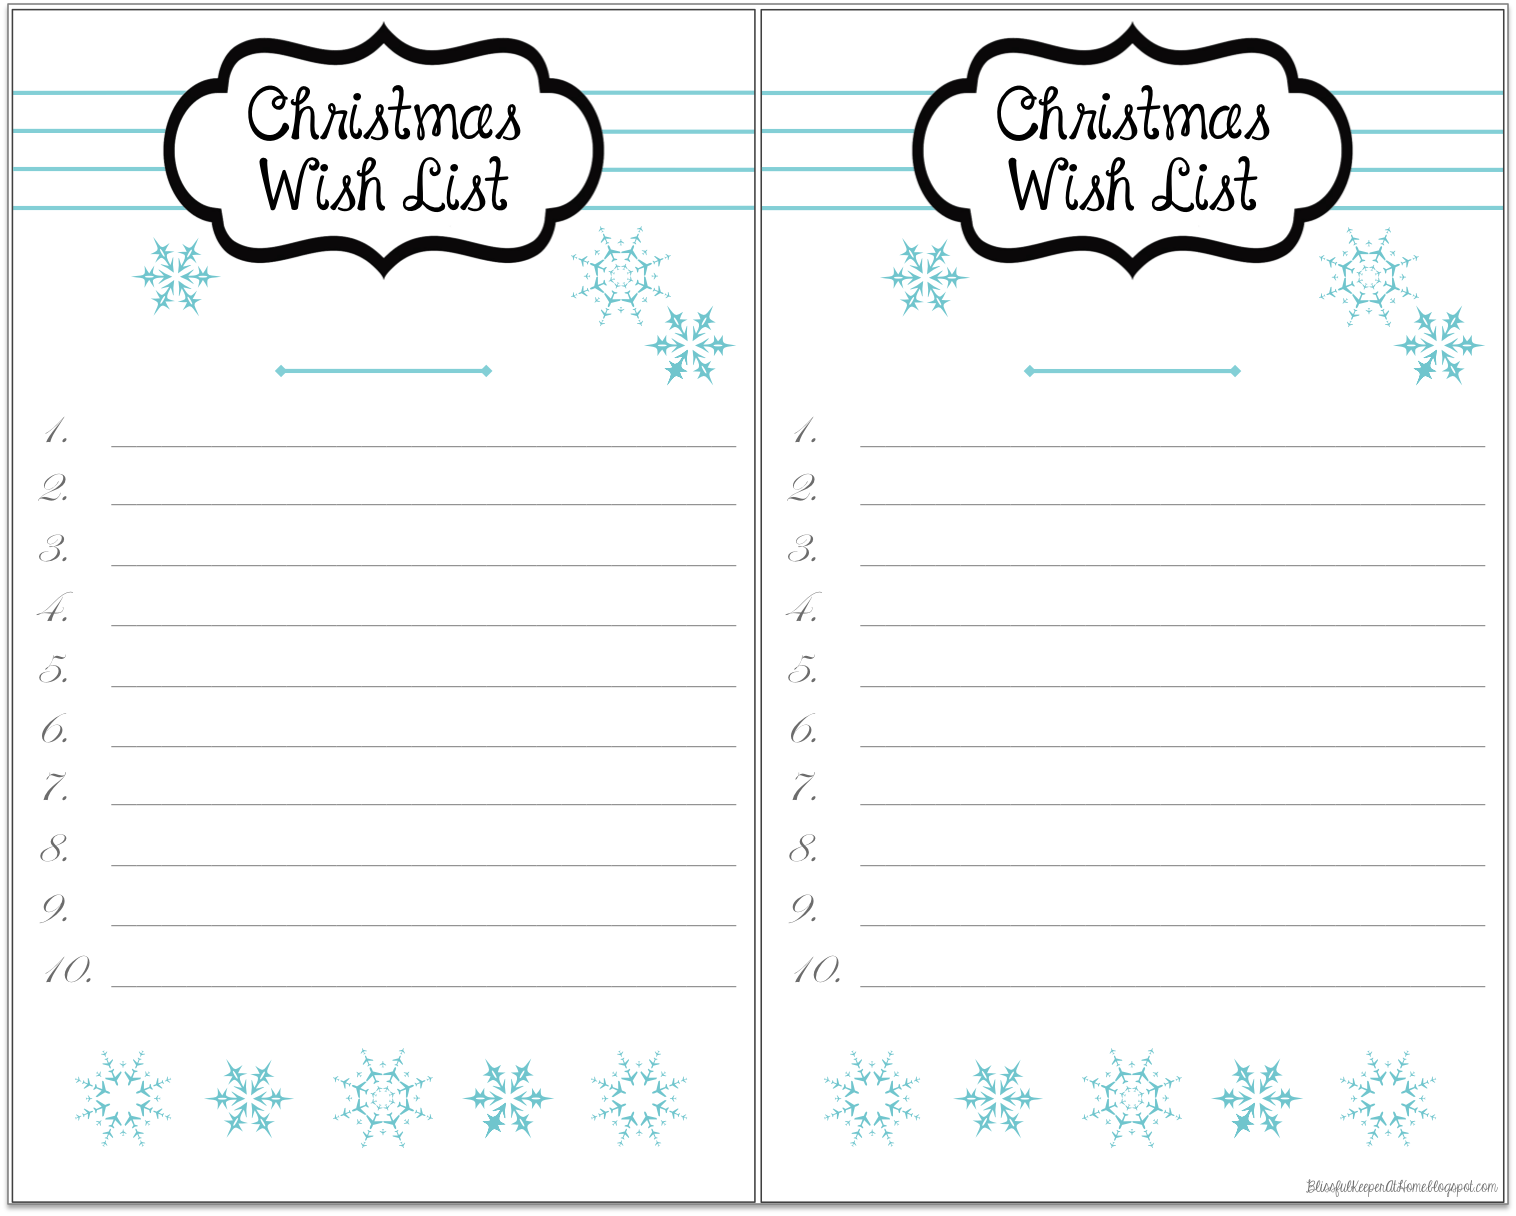 Santa Wish List Paper Printable | Search Results | Calendar 2015